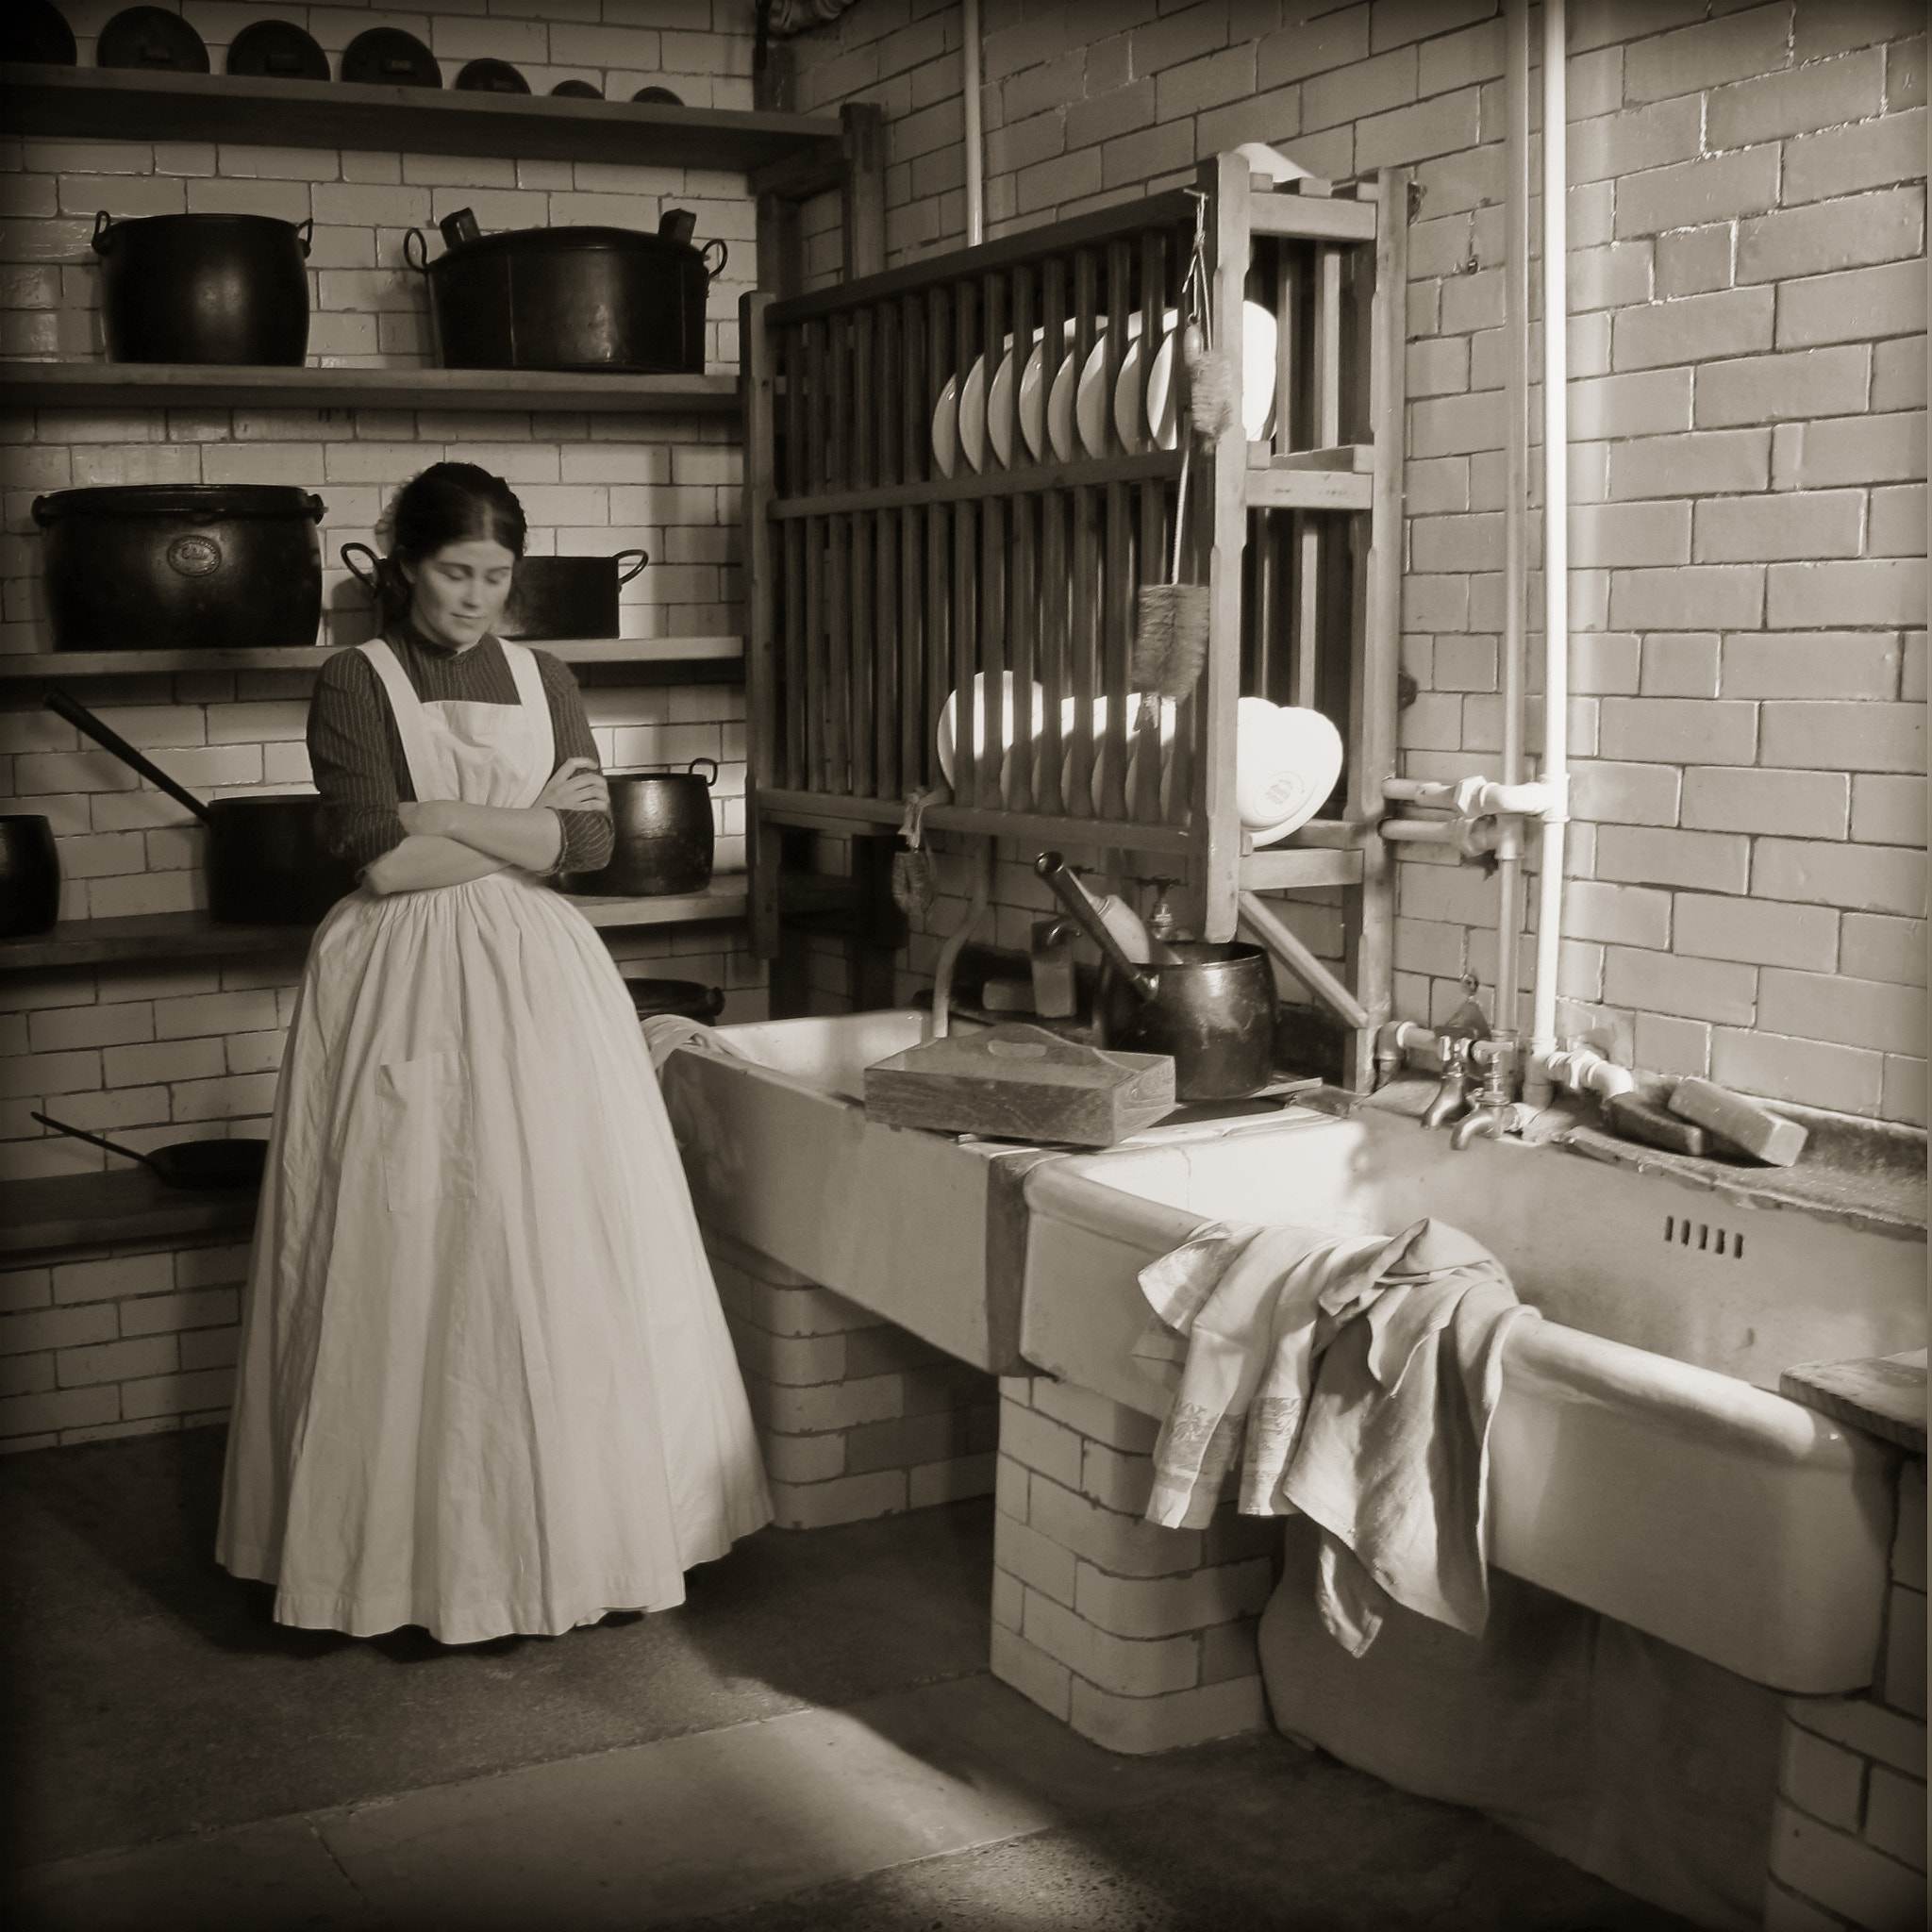 Photograph The Dishwasher, old style. by Jim Downie on 500px